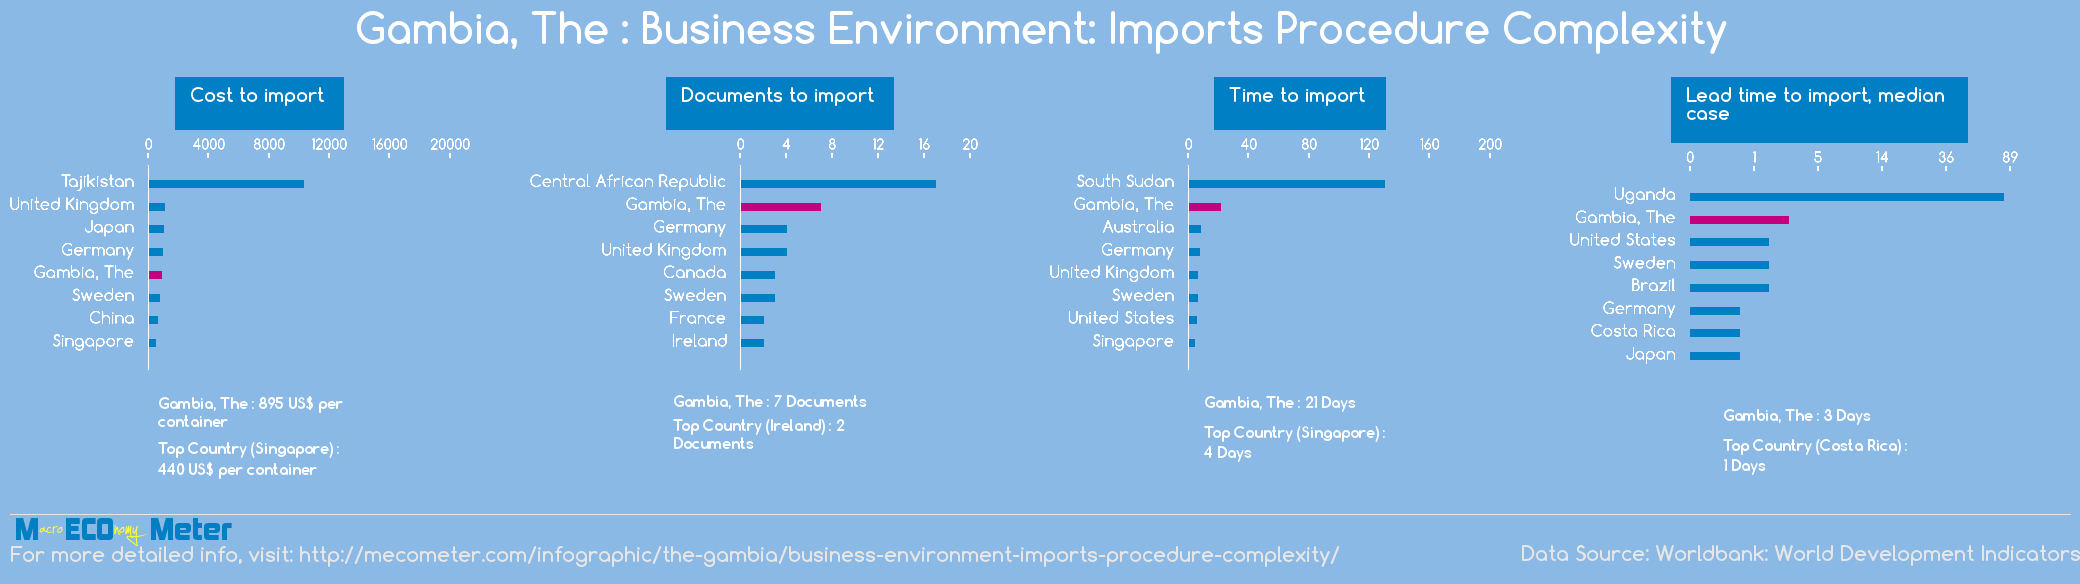 Gambia, The : Business Environment: Imports Procedure Complexity